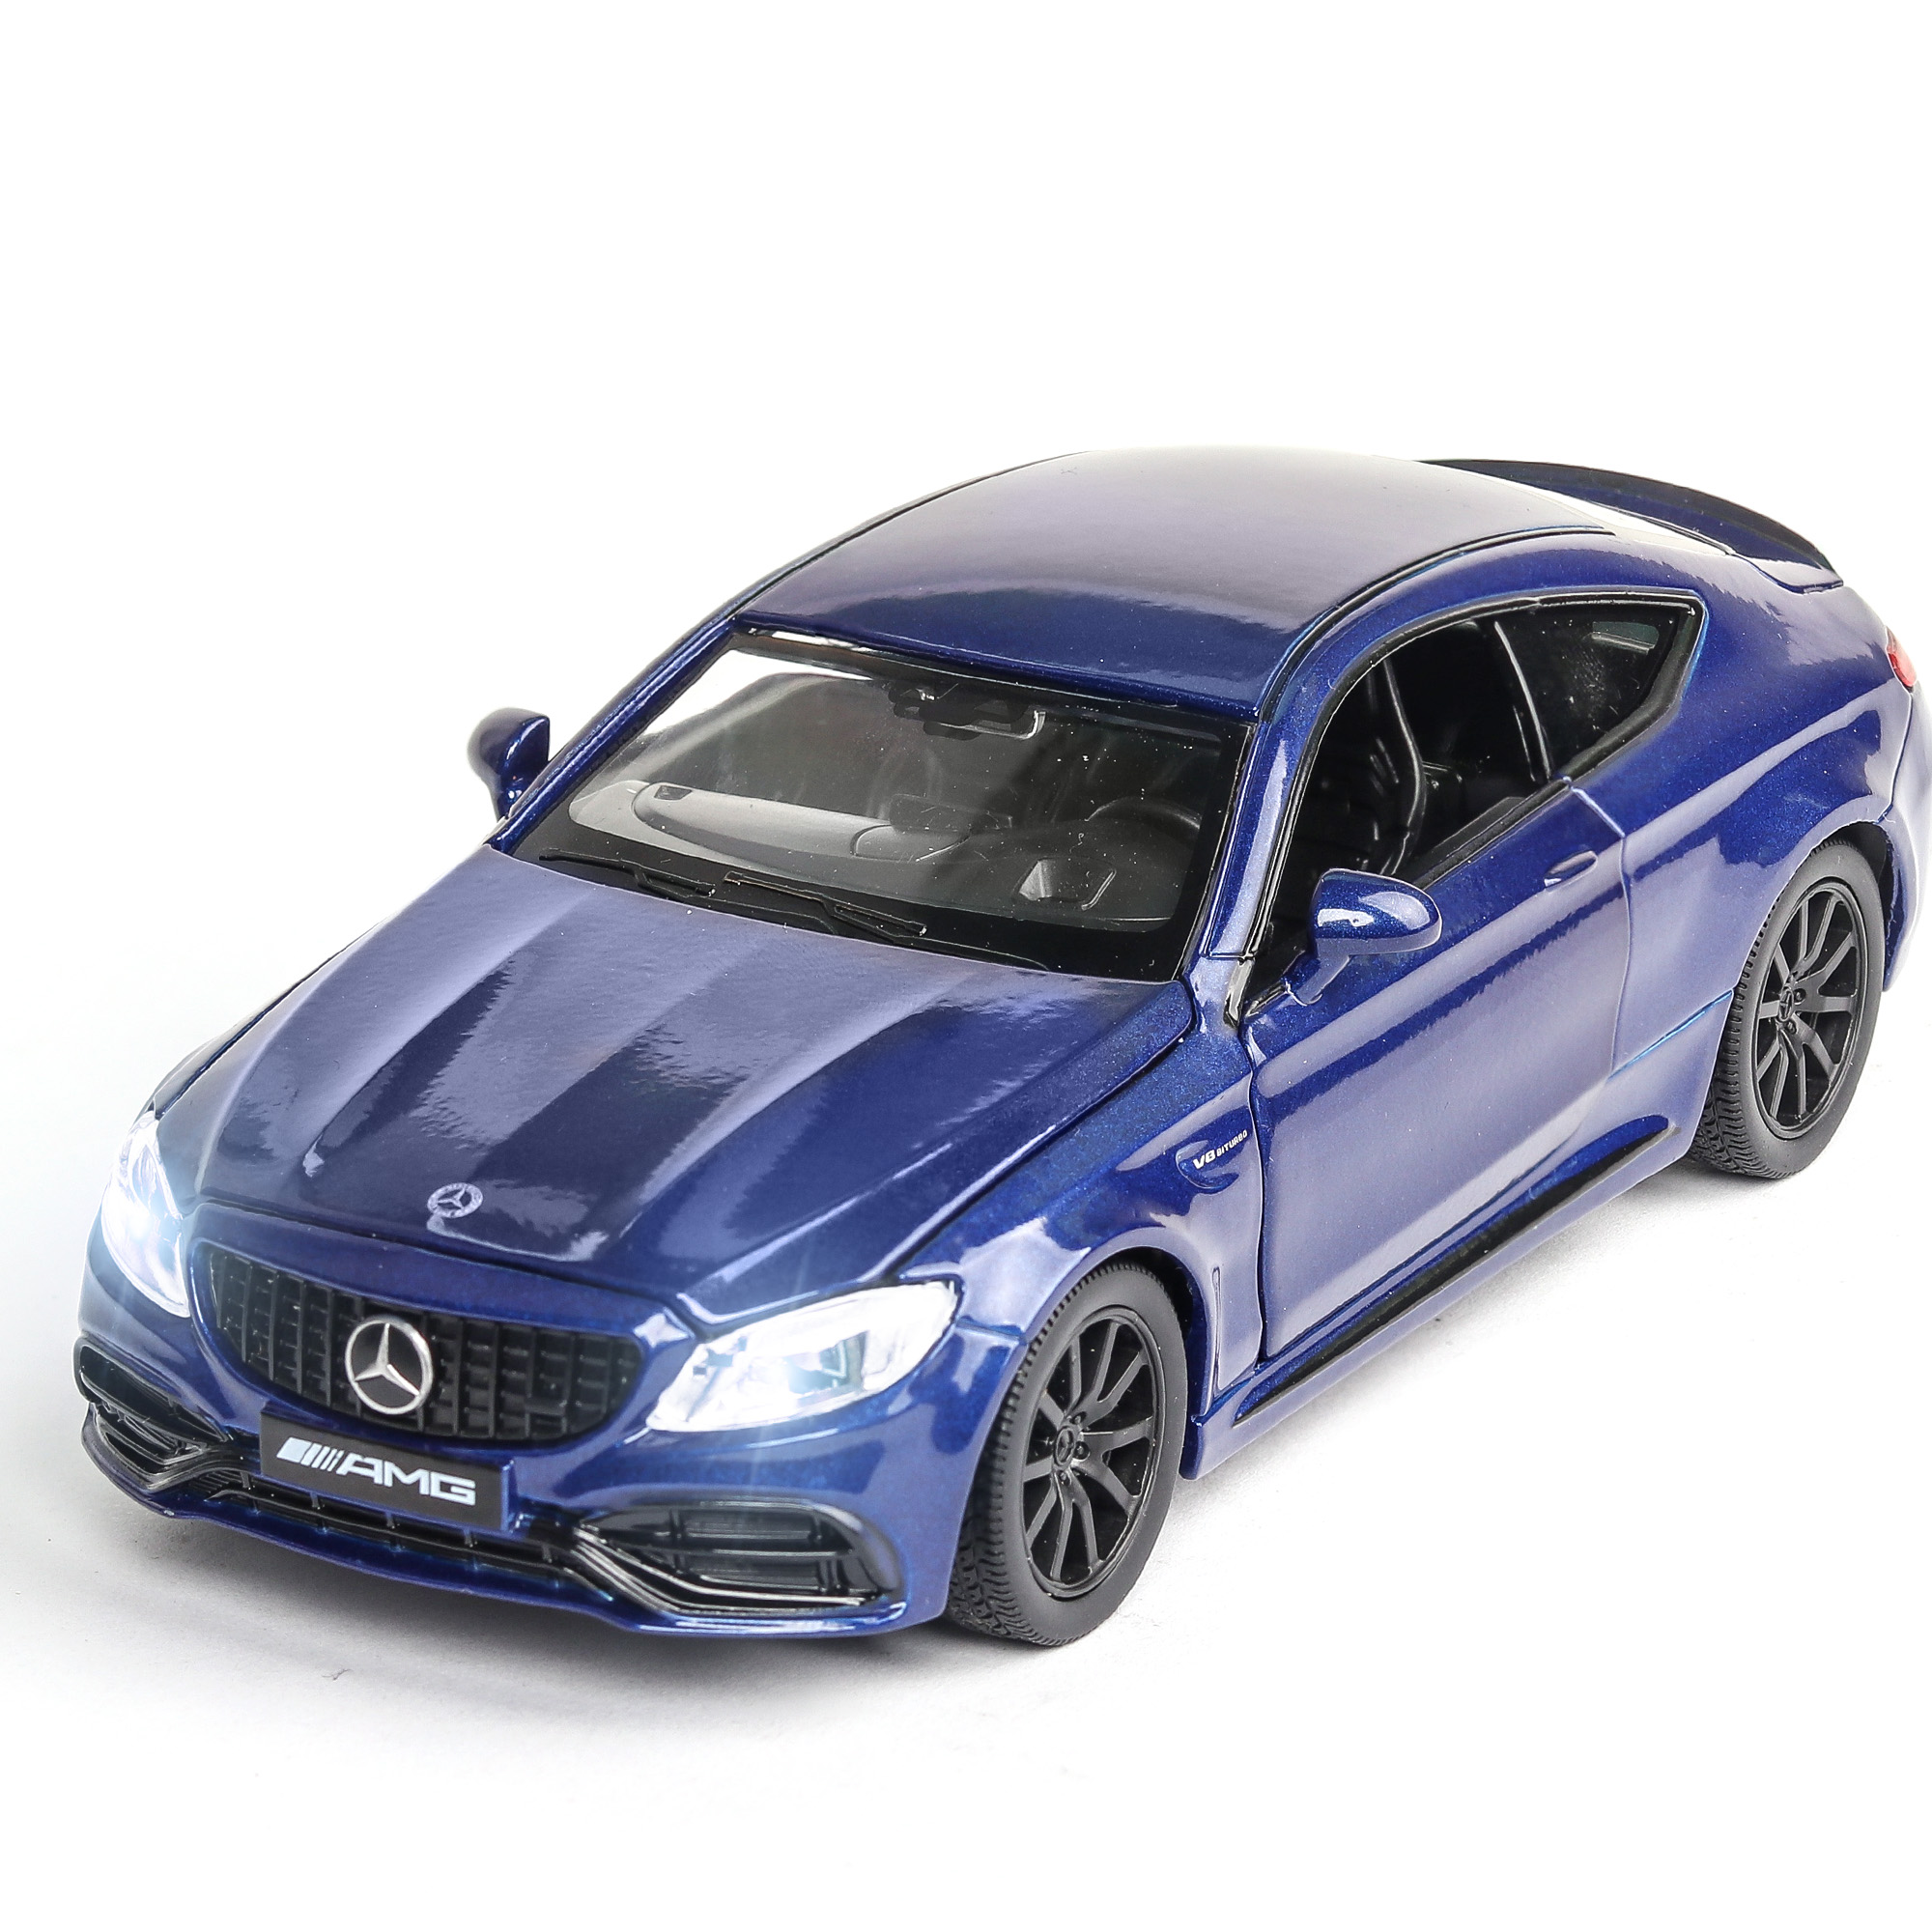 New 1:32 BENZ AMG C63S Alloy Car Model Diecasts & Toy Vehicles 4 Doors Can Be Opened Car Educational Toys For Children Gifts Boy